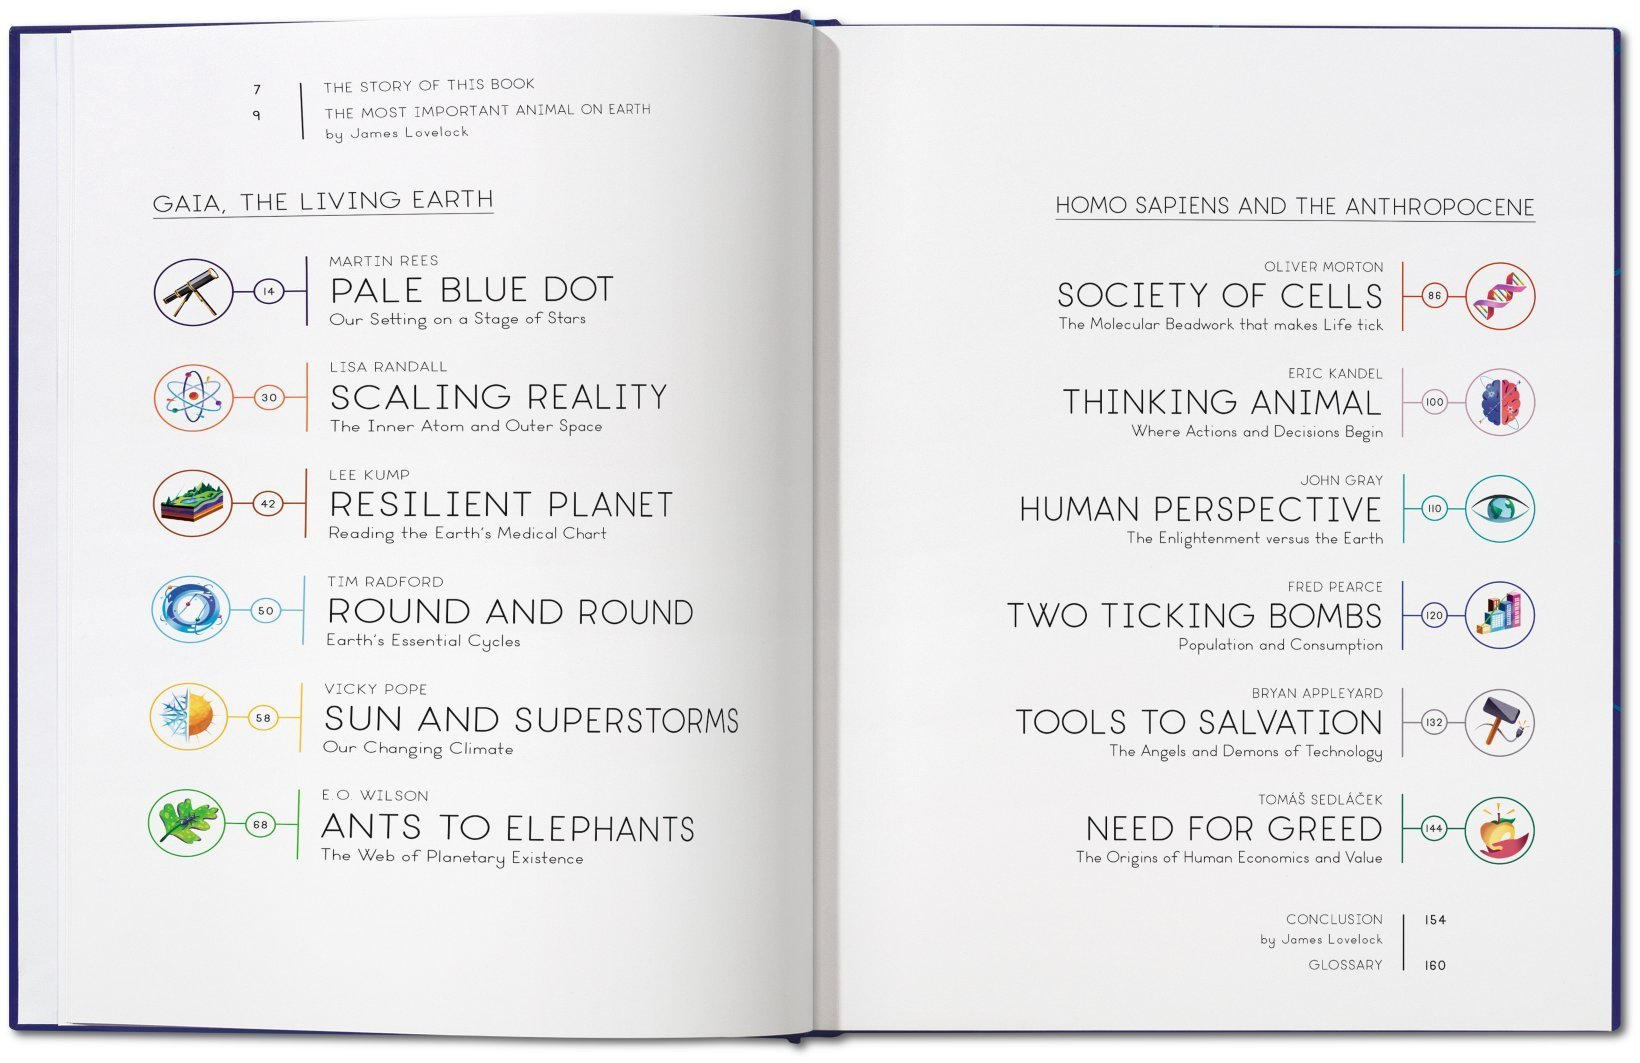 ... James Lovelock et al. The Earth and I - image 4 ...